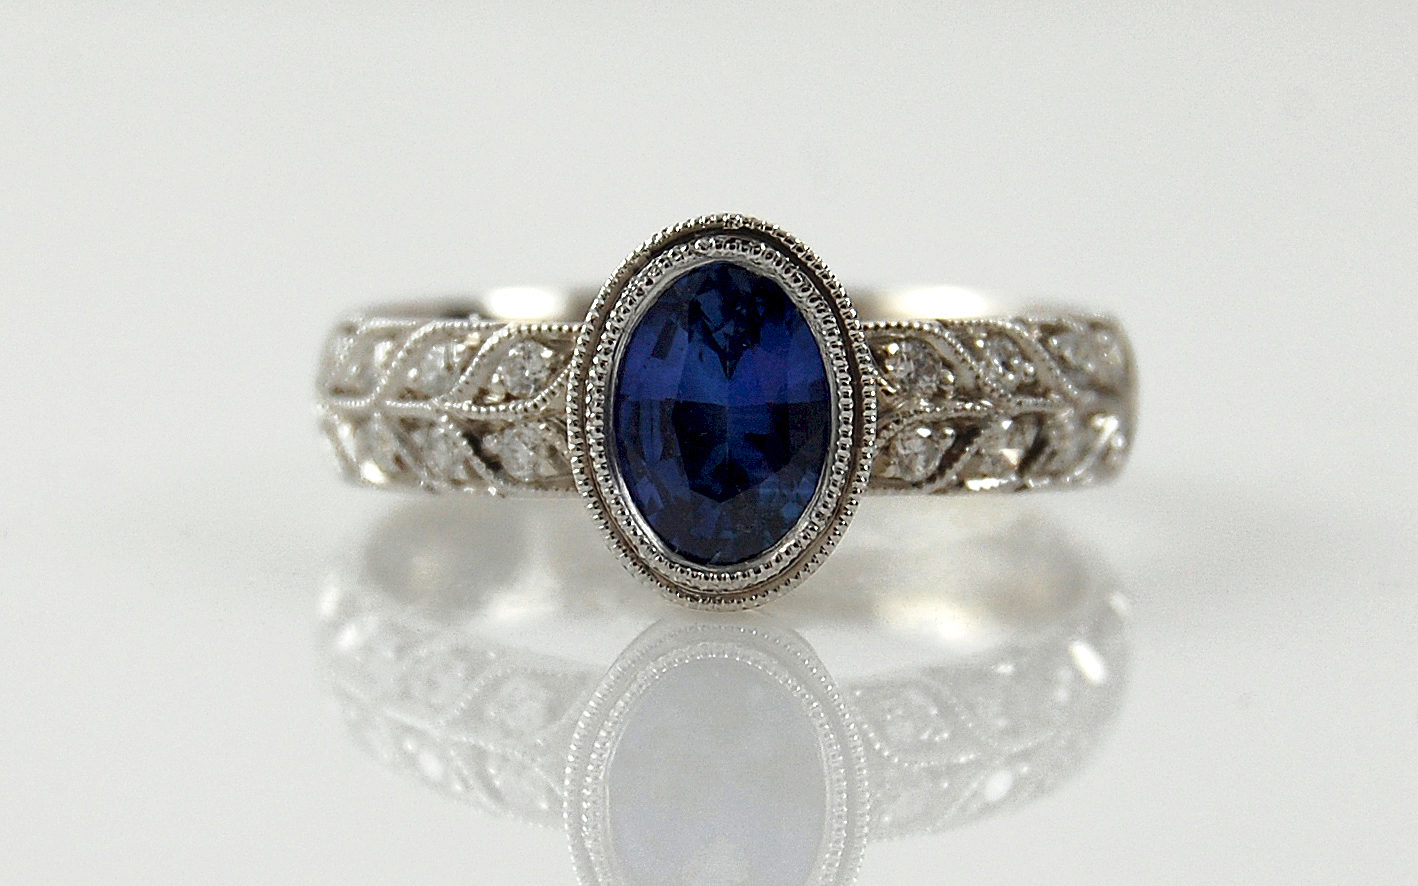 Oval Sapphire with Double Row Bead Set Diamonds